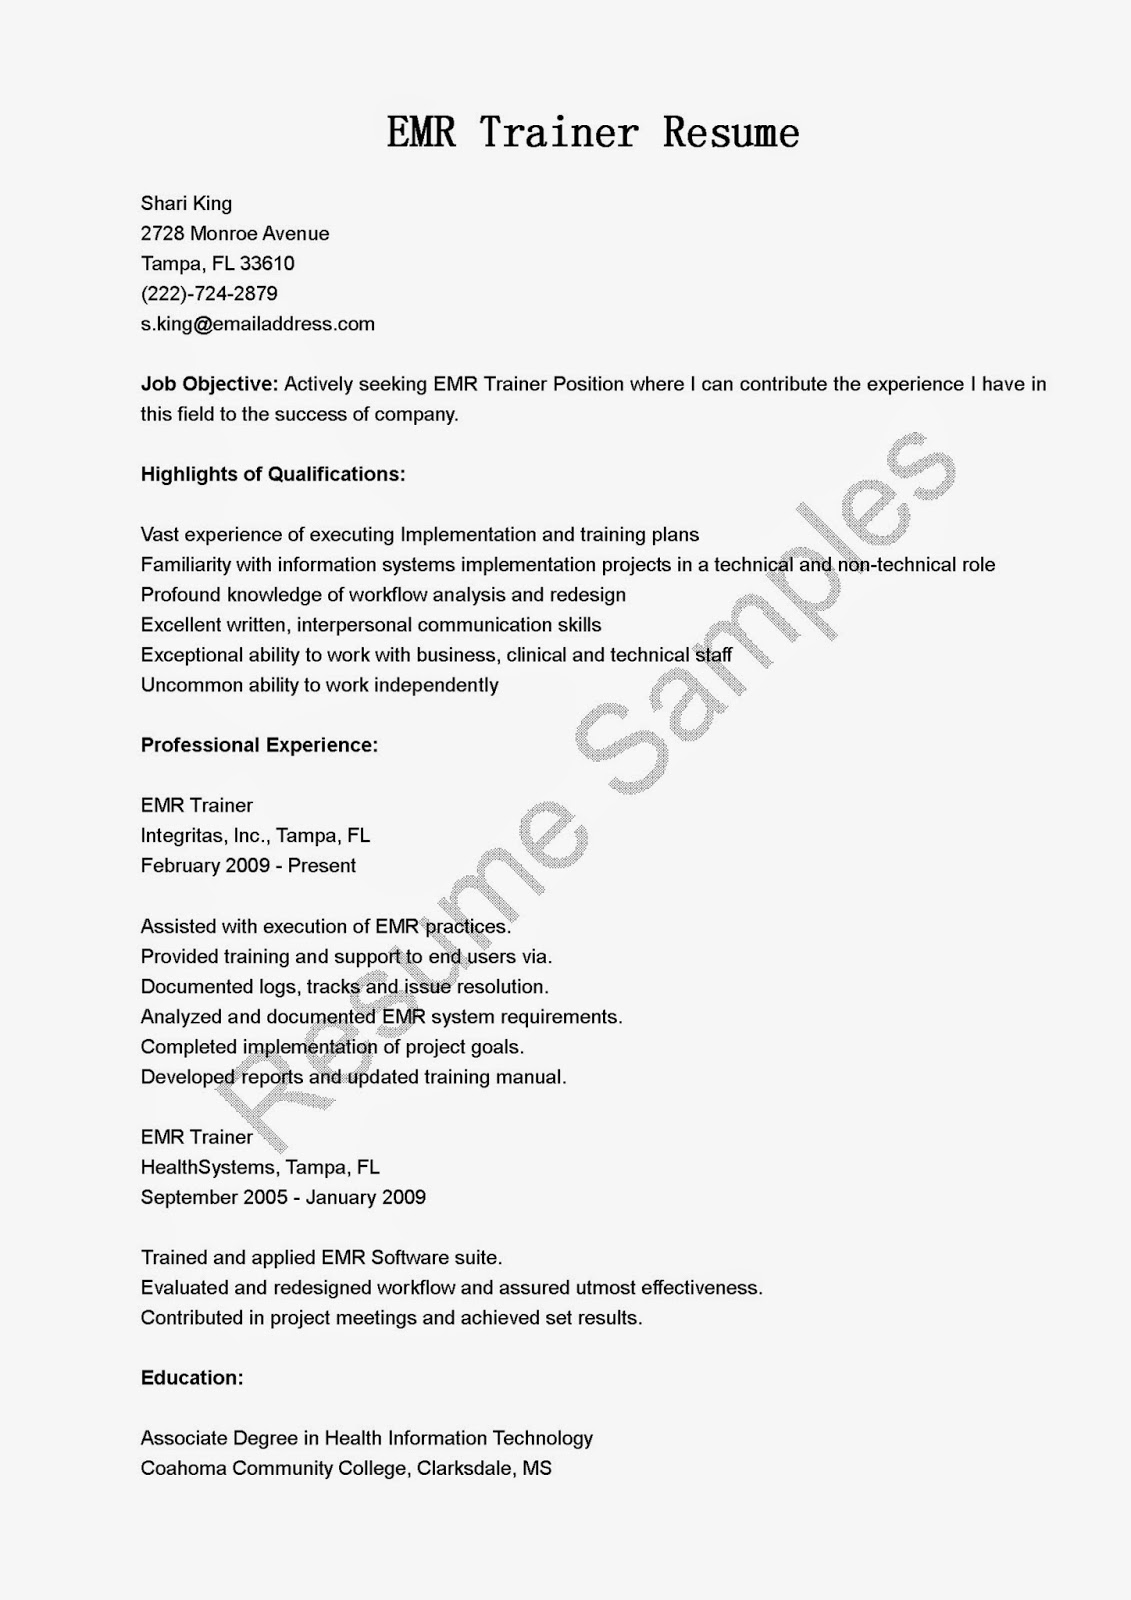 emr consultant resume sample best online resume builder emr consultant resume sample emr consultant resume example best sample resume consultant trainer and business coach